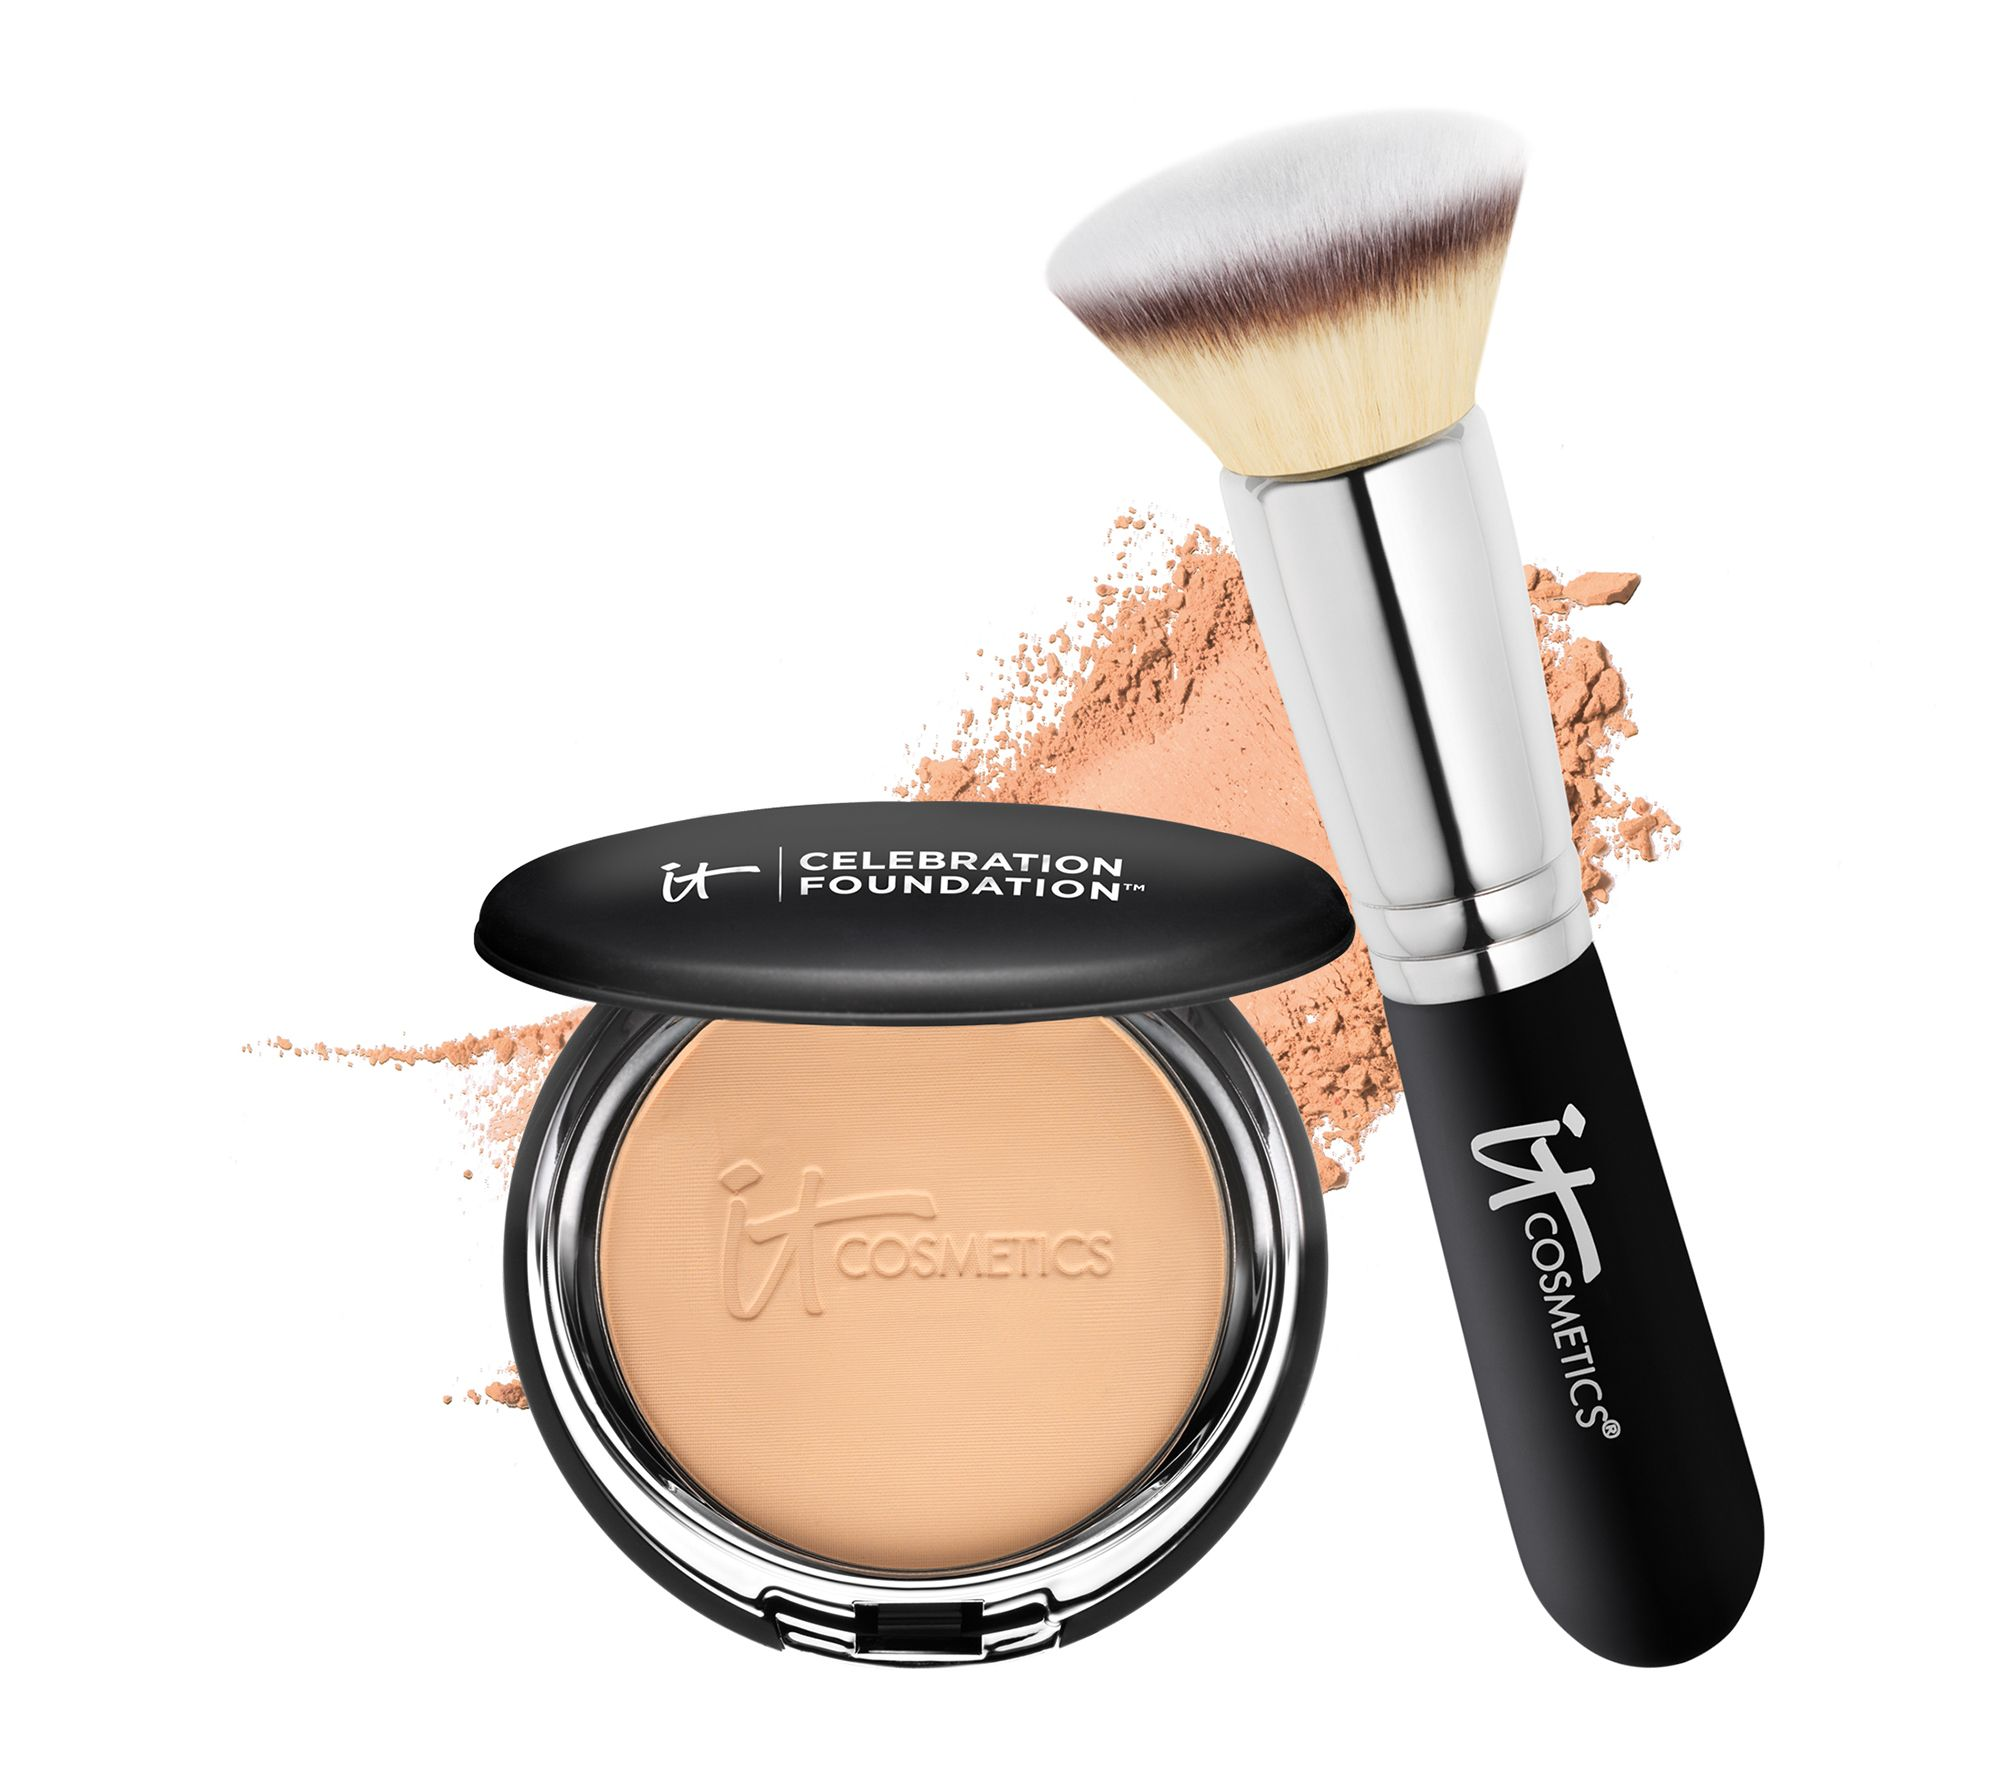 it cosmetics love is the foundation brush 2020